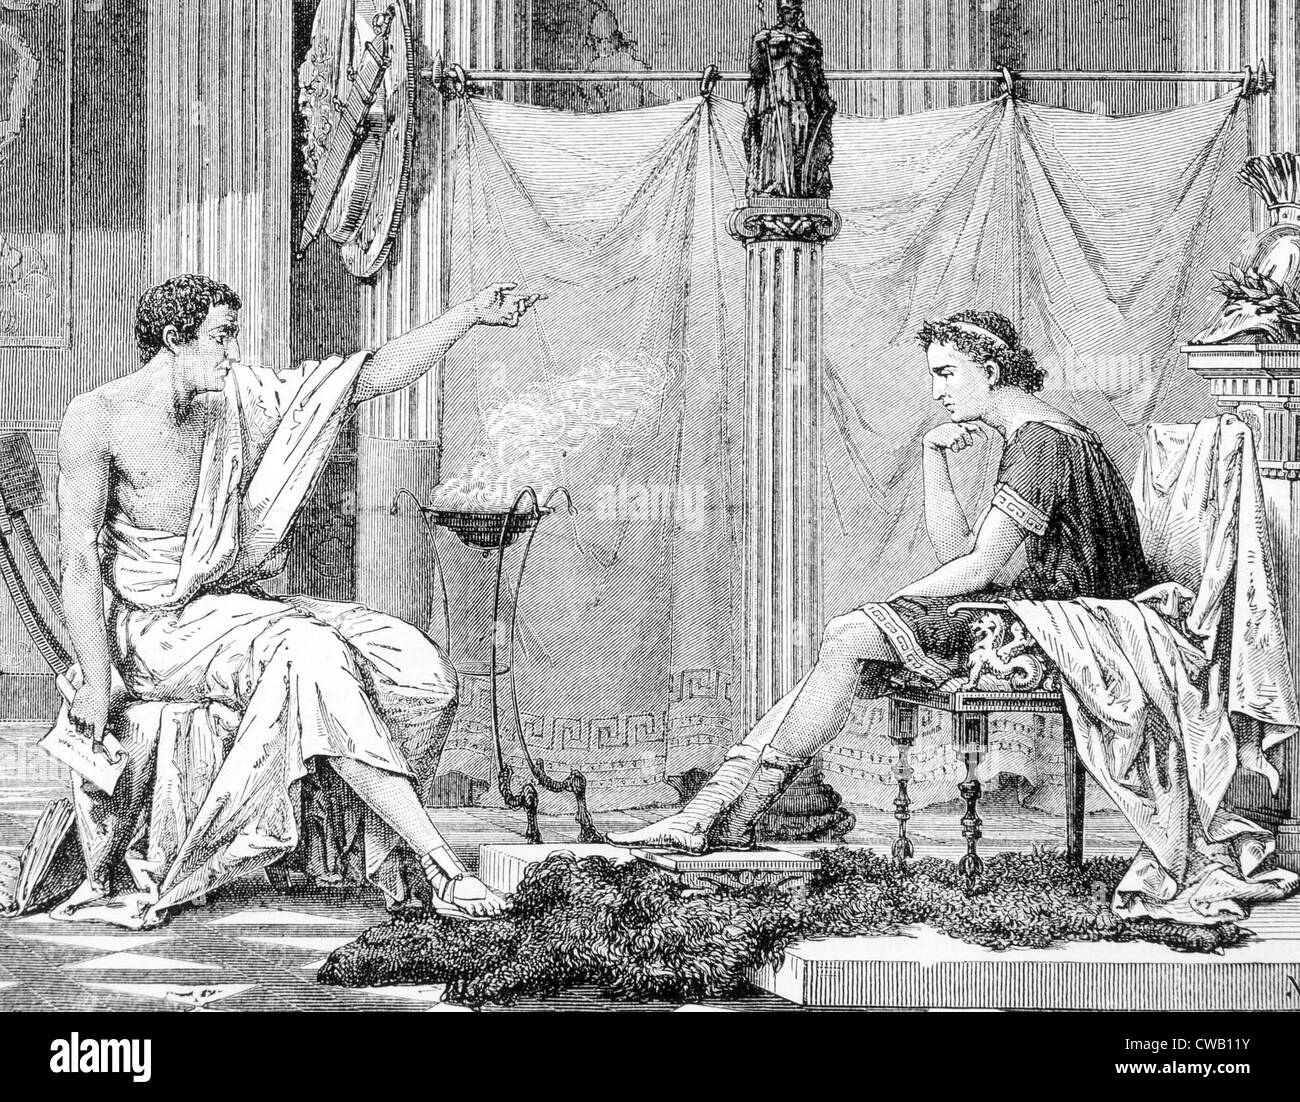 Aristotle and his pupil Alexander the Great, engraving 1885 - Stock Image